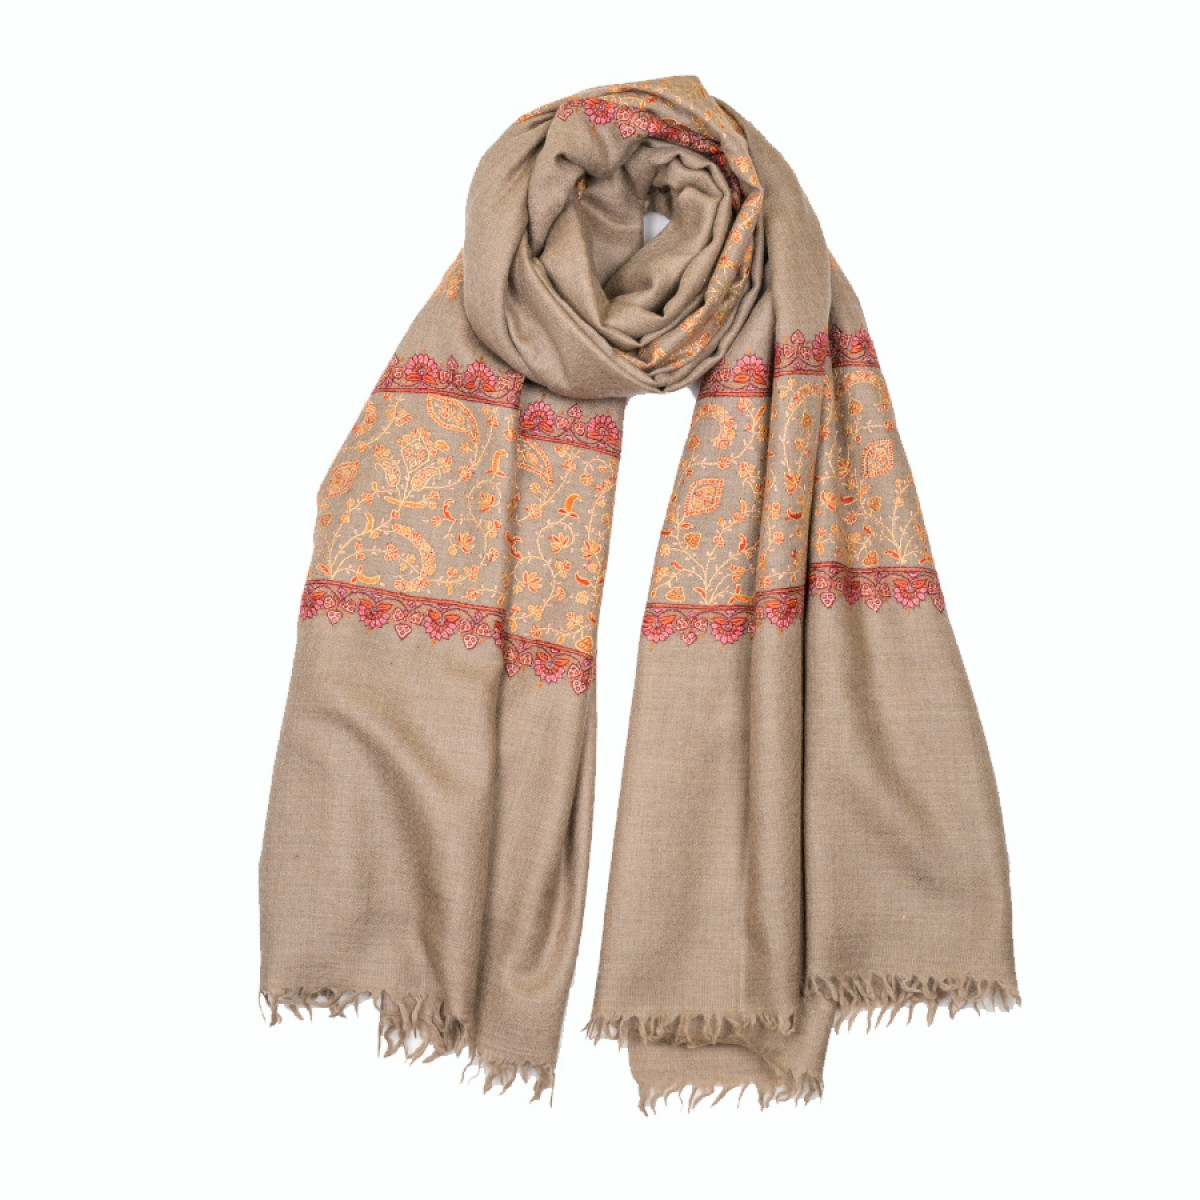 Embroidered Pashmina Shawl - Brown